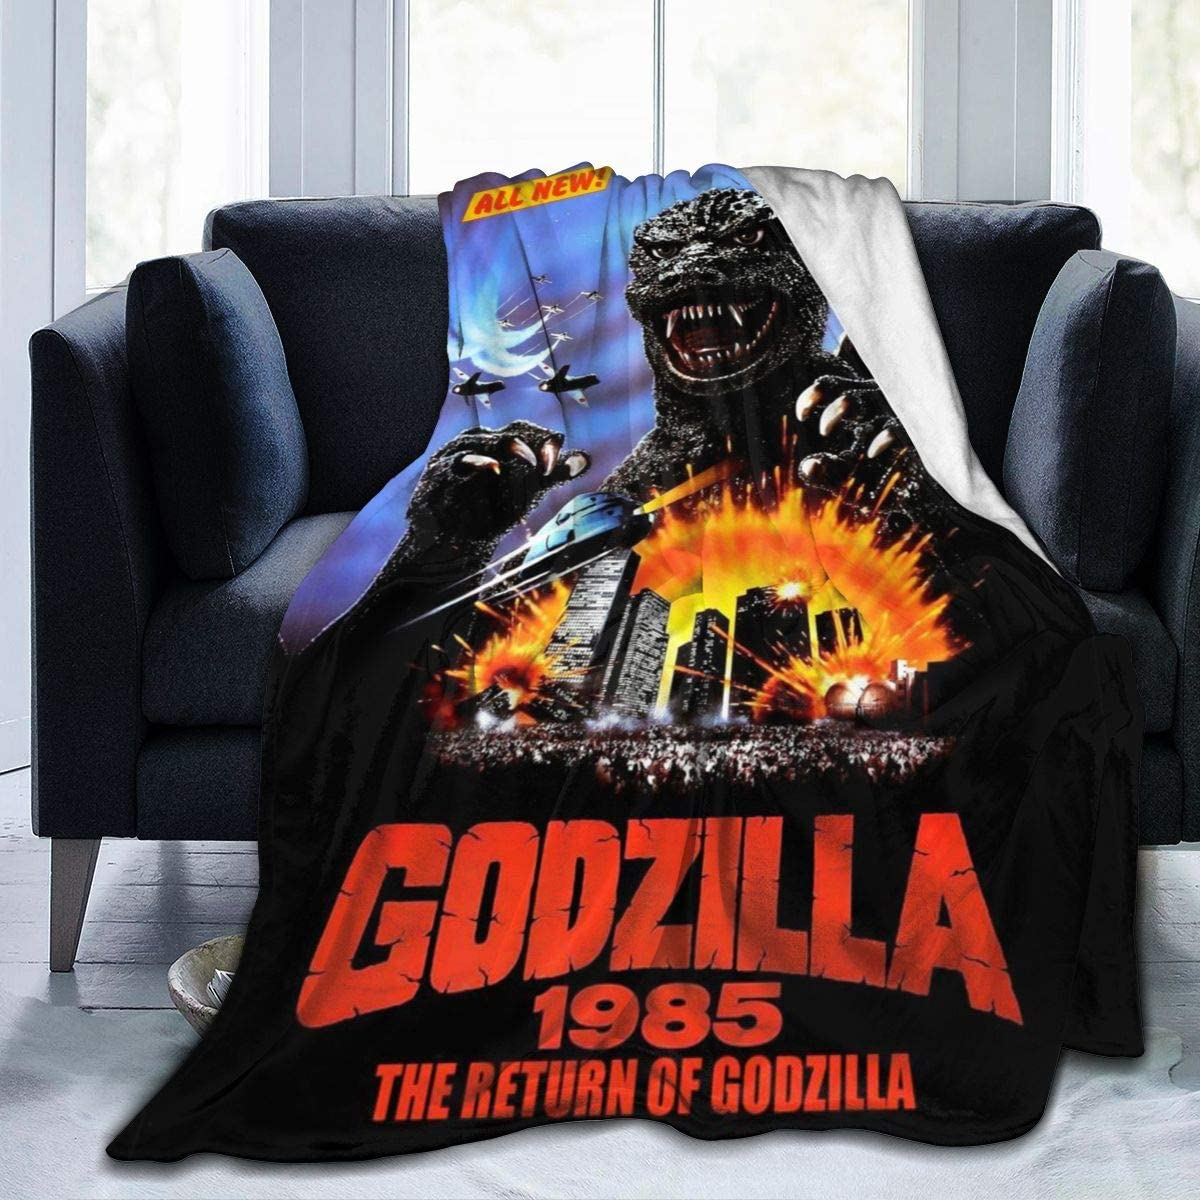 Rustic Fleece Bed Blankets, The Return of Godzilla Monsters 1985 Movie Poster Decorative Throw Blankets, Washable Super Cozy Cute Blanket Fit Dad Hotel Preschool